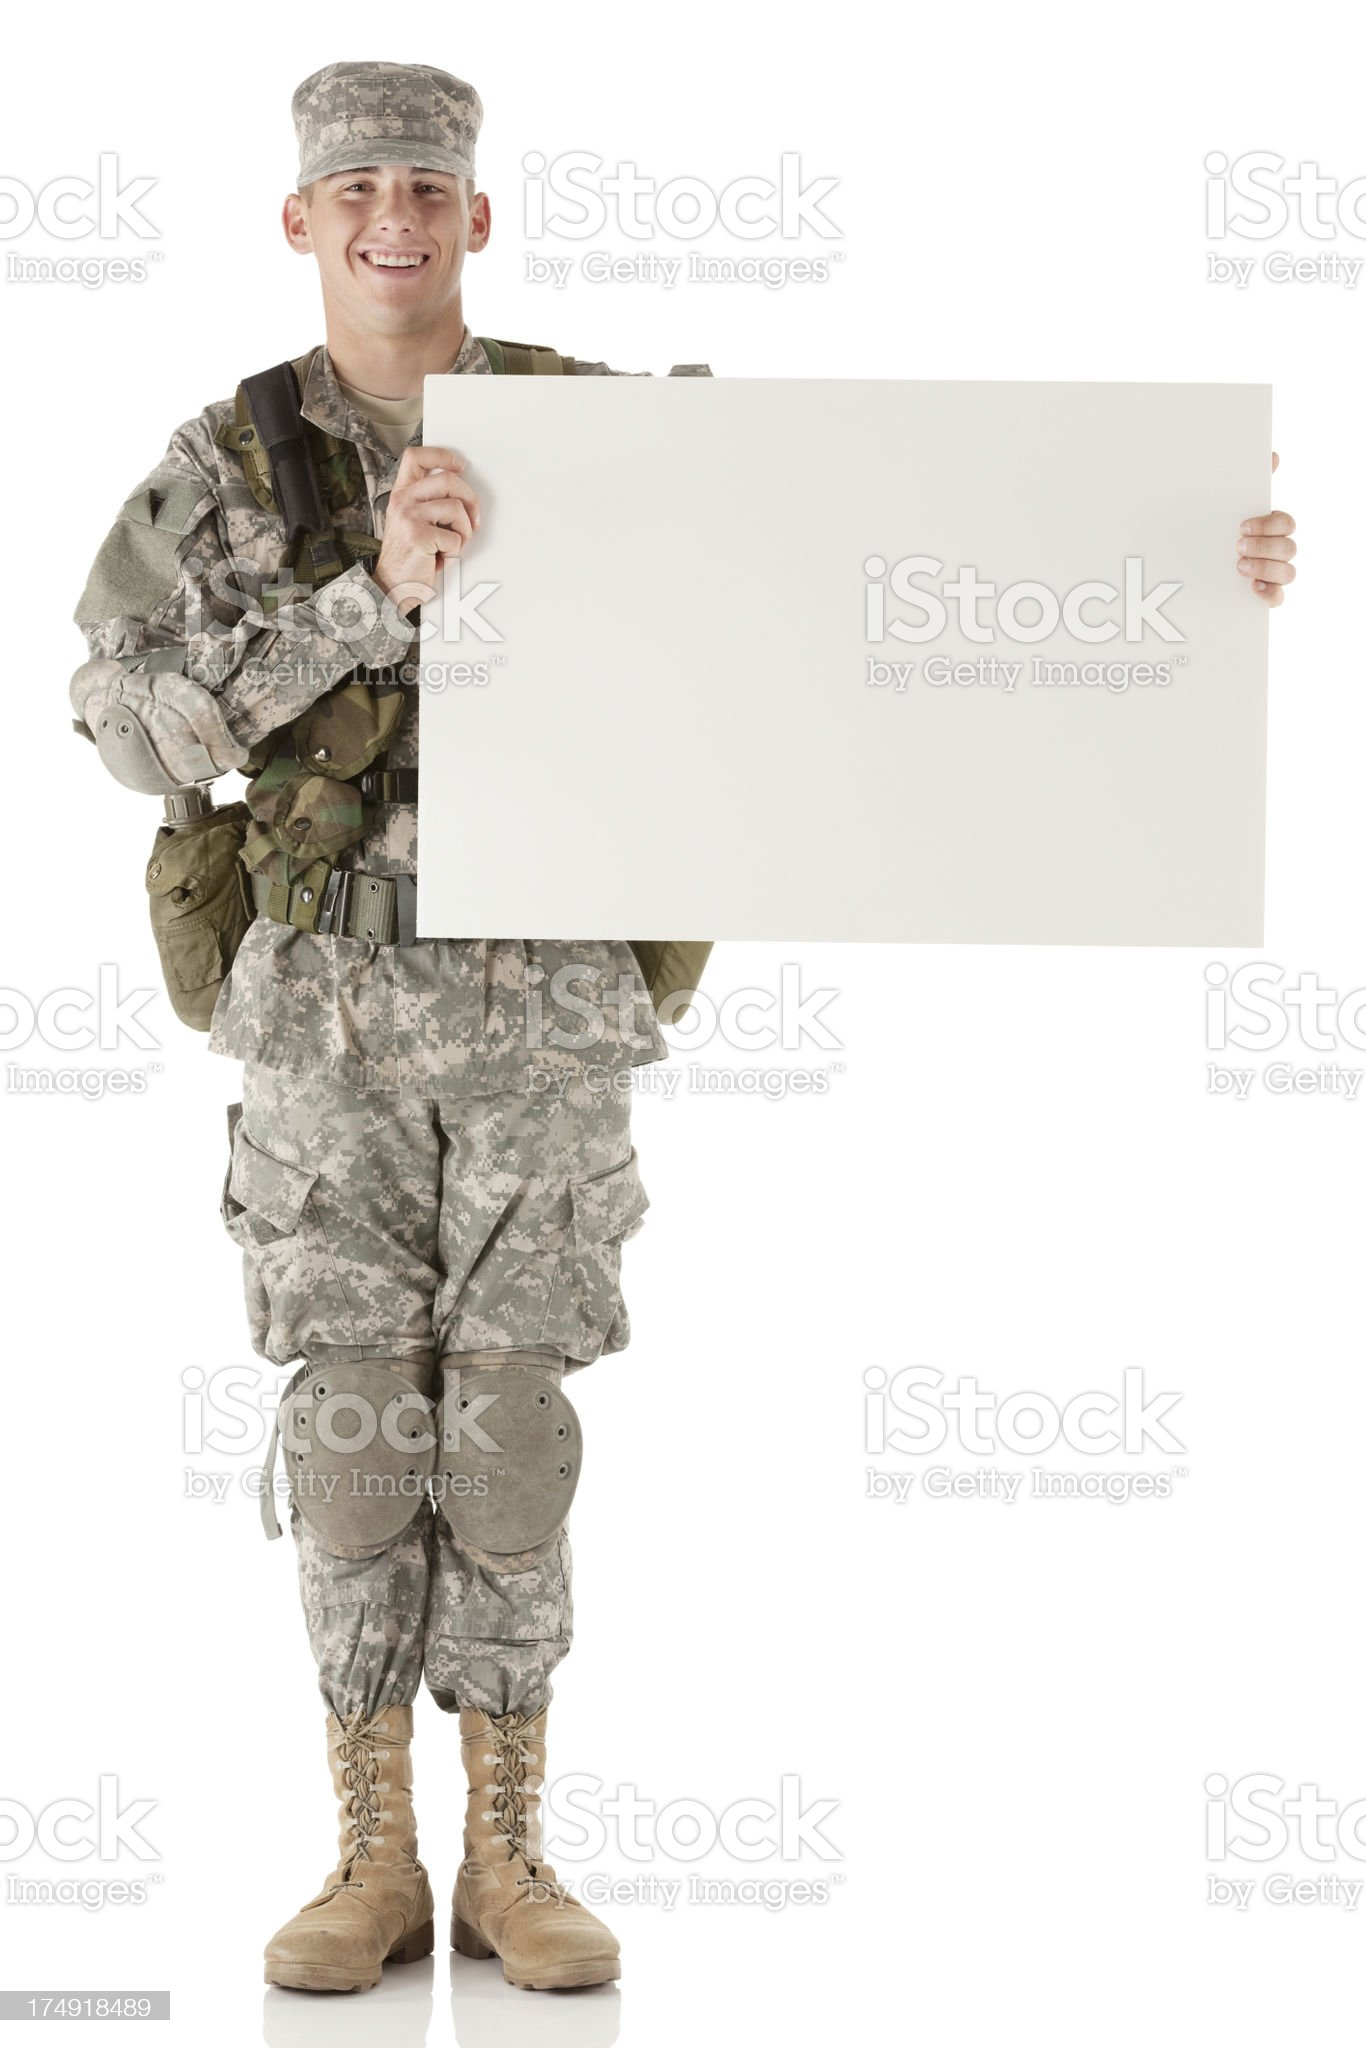 Happy army soldier holding a whiteboard royalty-free stock photo